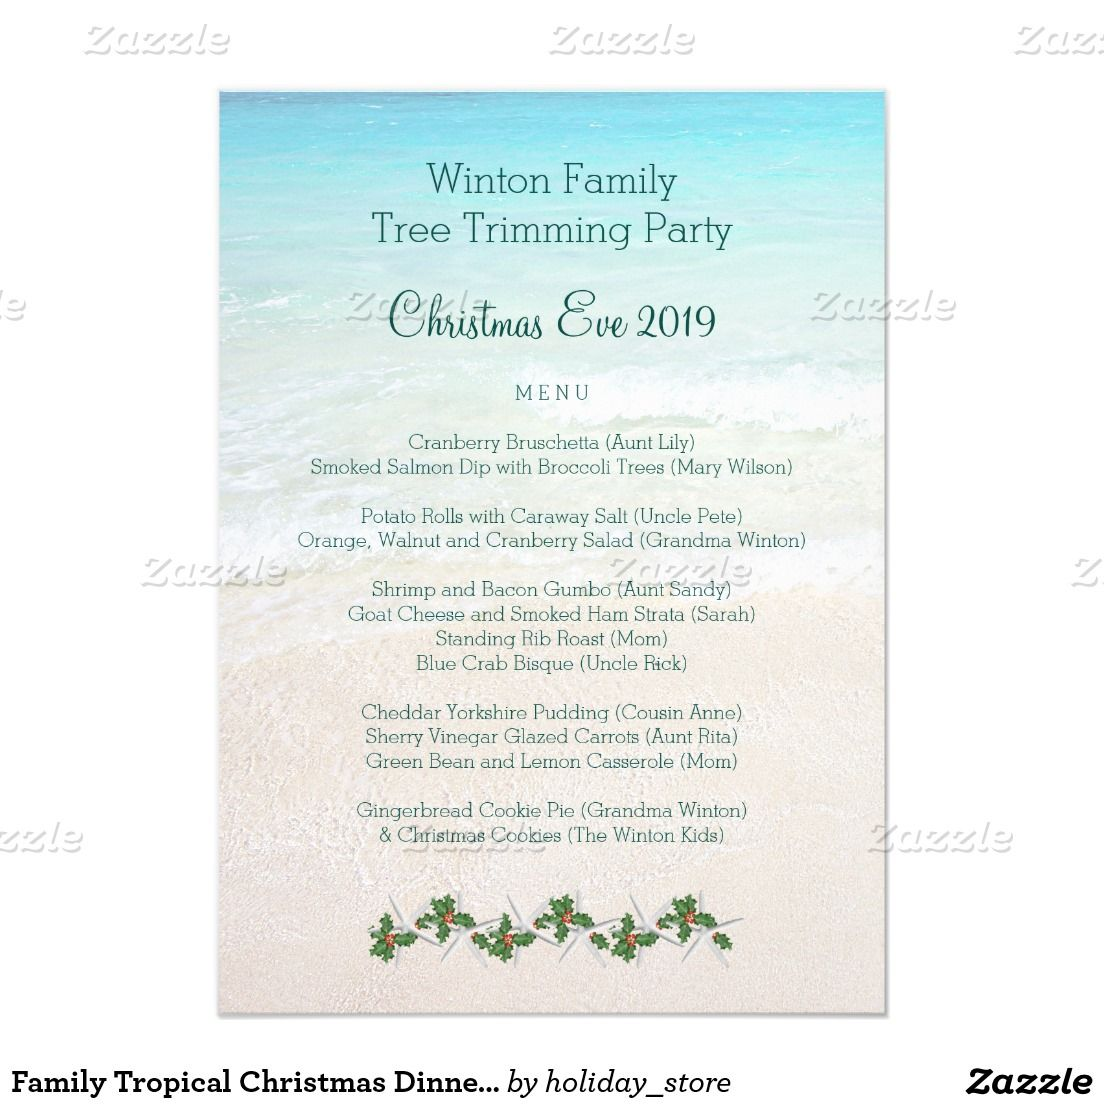 Family Tropical Christmas Dinner Menu Template | Menu templates ...